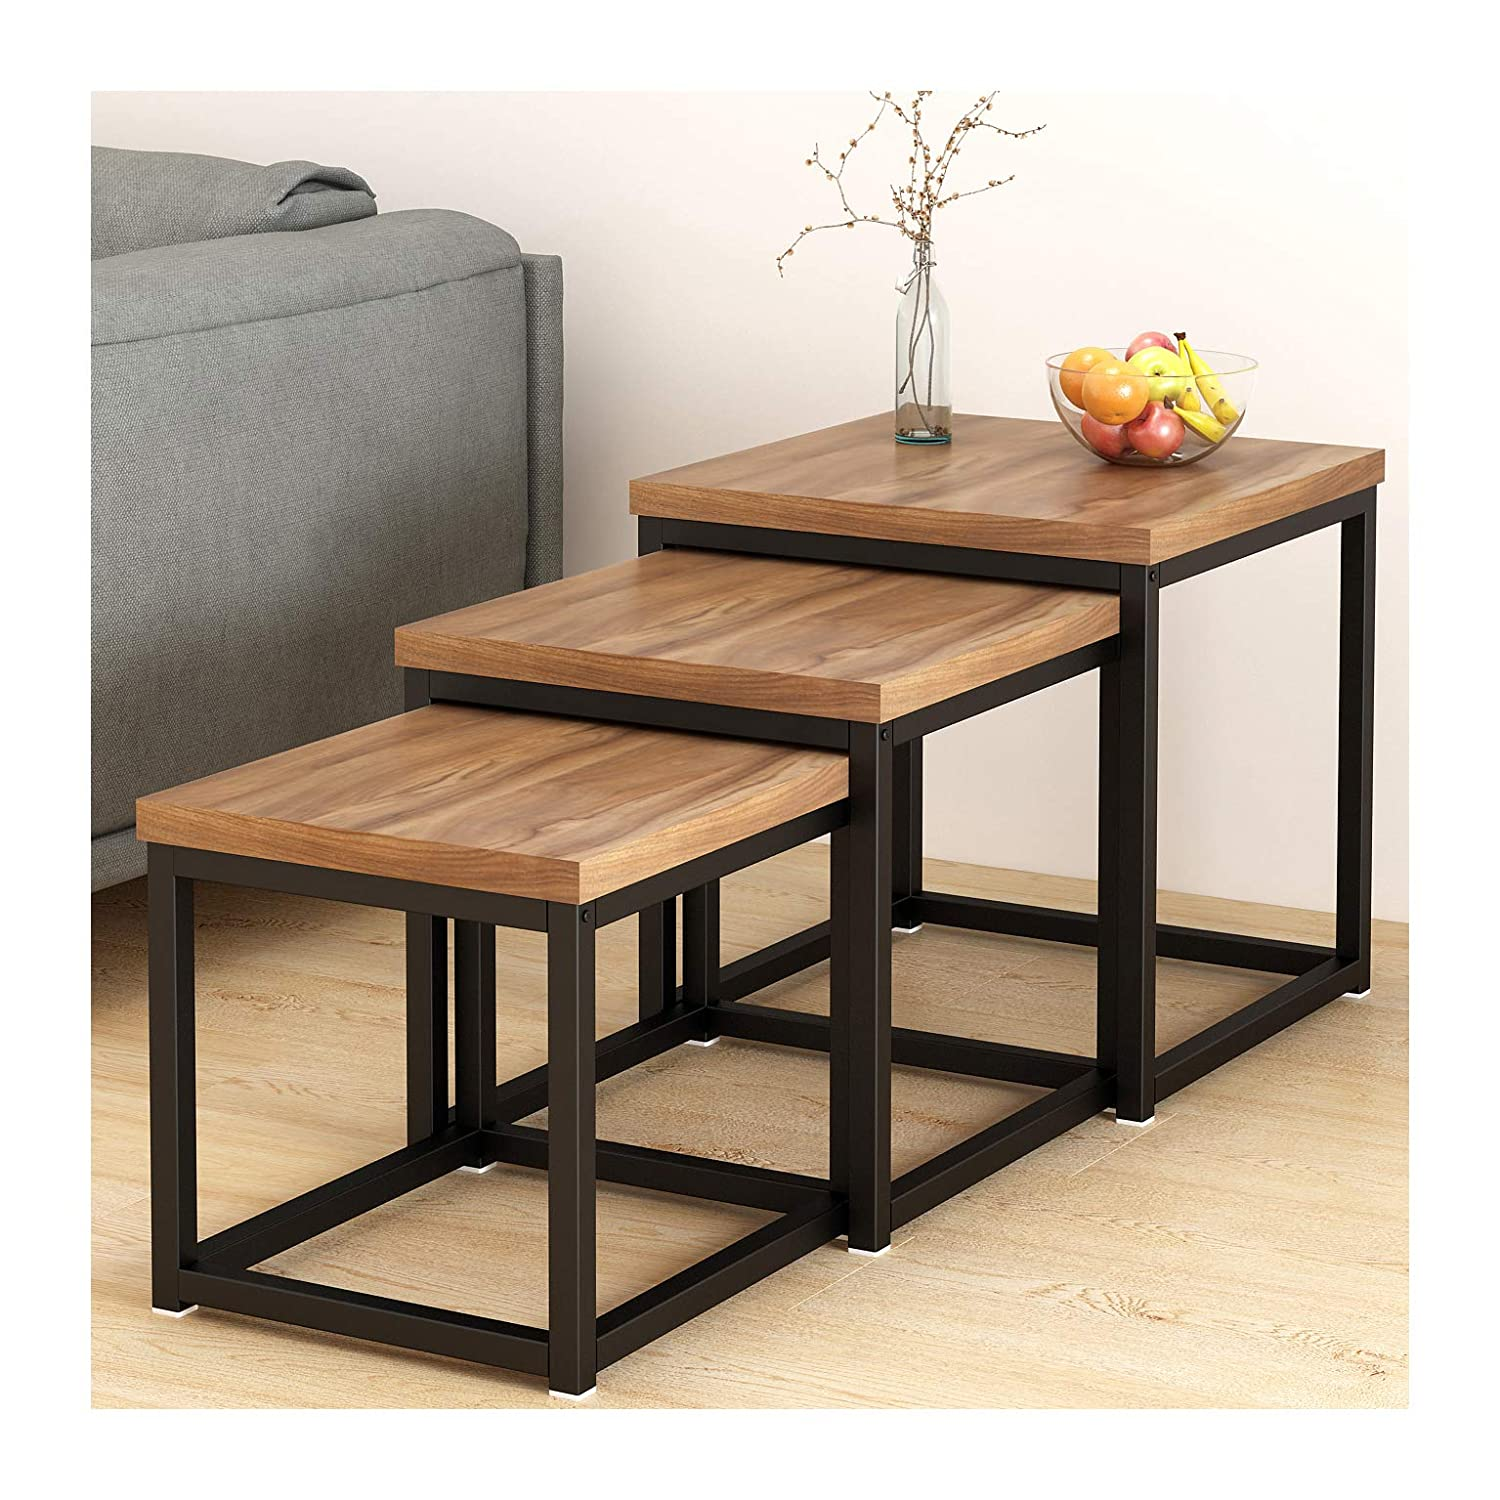 Cherry Tree Furniture CLIVE Walnut Nesting Tables Nest of 3 Tables 3-Piece End Tables 50 x 50 x 50 cm